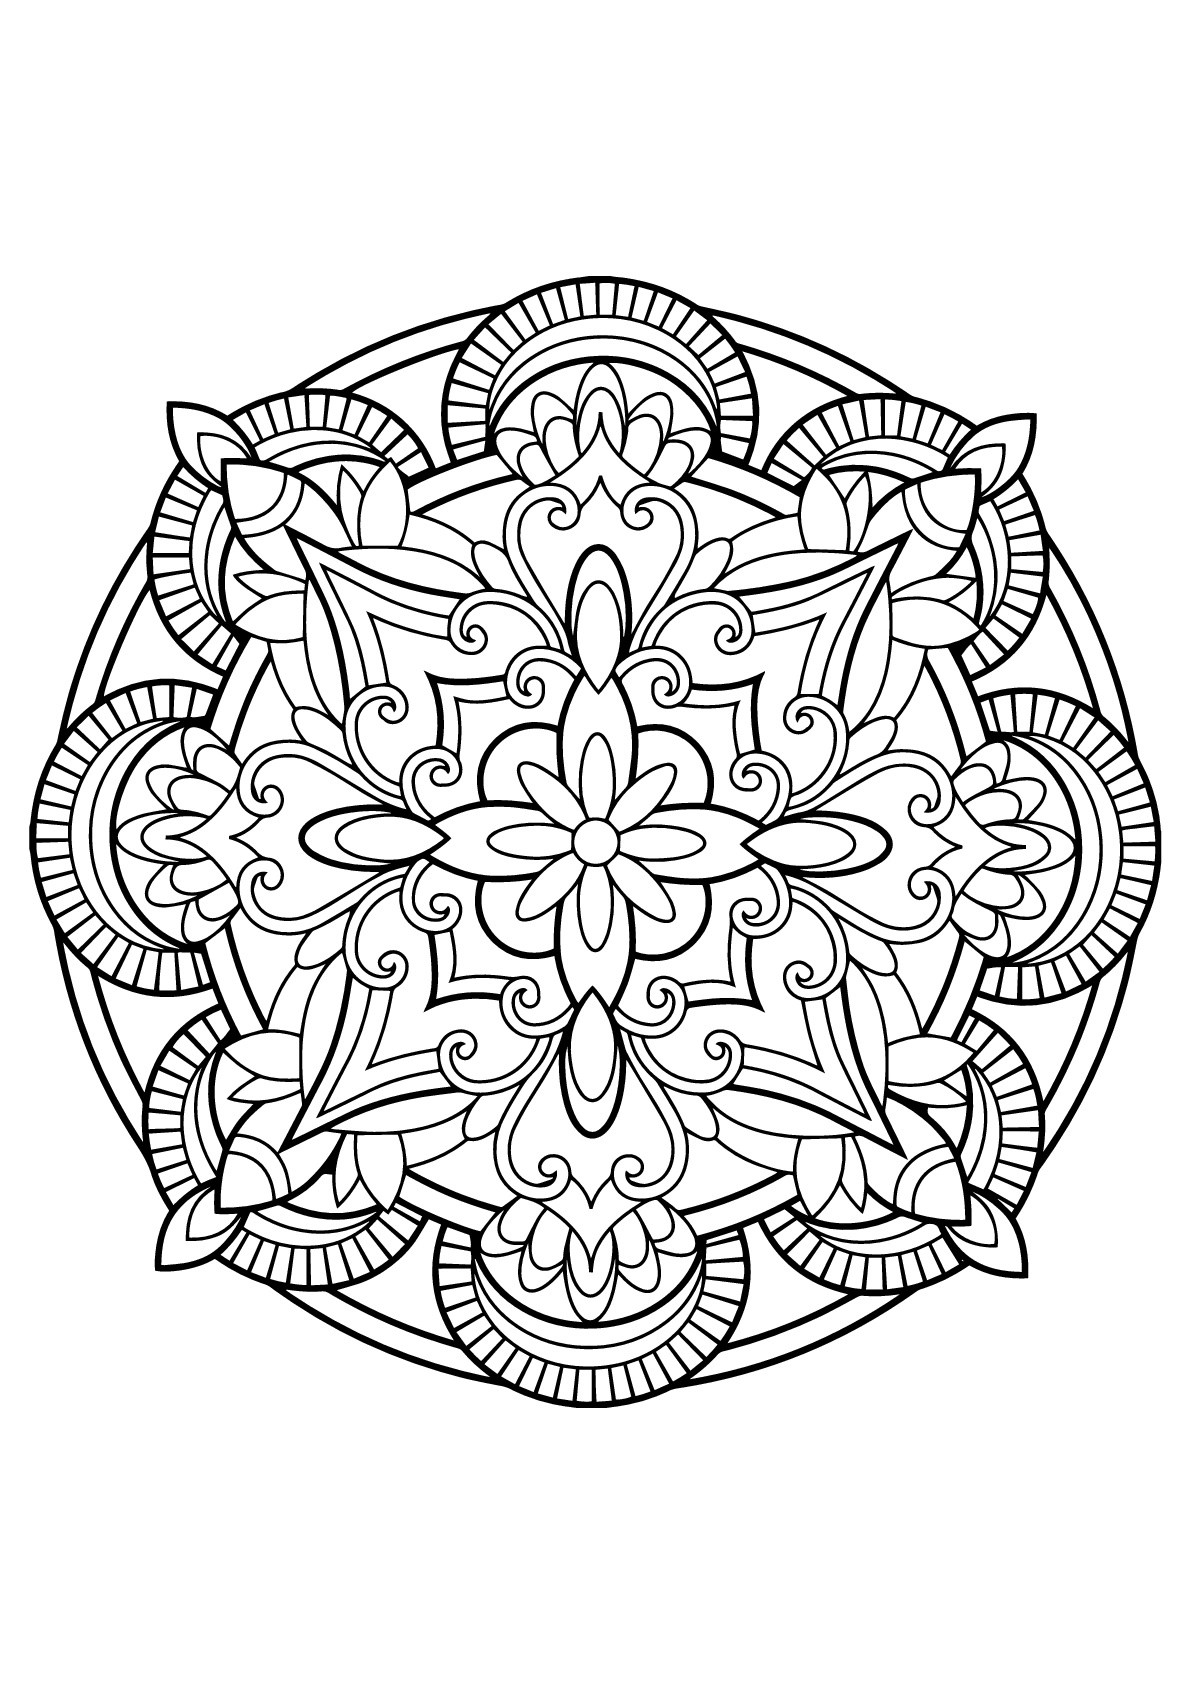 Mandala From Free Book For 23 Mandalas Coloring Pages For